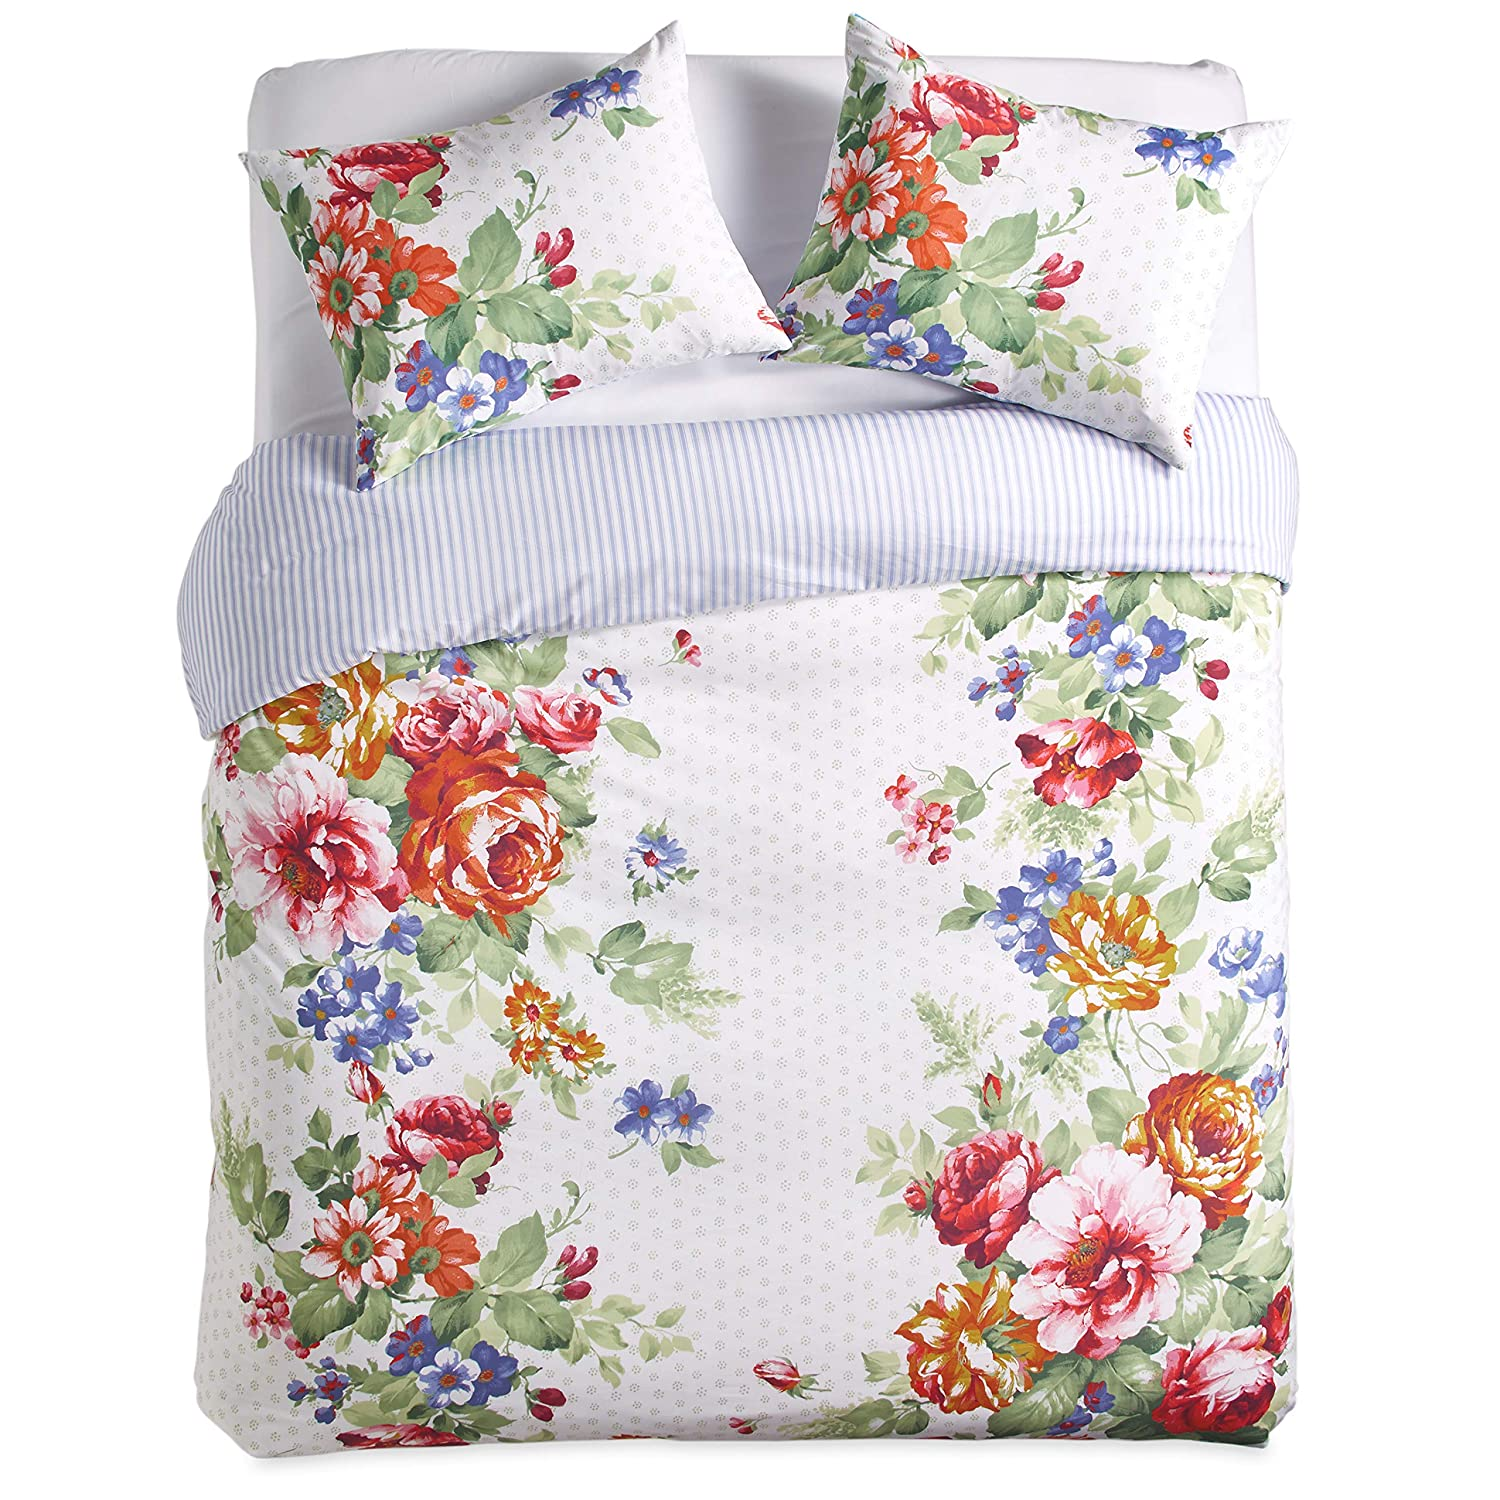 The Pioneer Woman Beautiful Bouquet Duvet Cover, White (king)